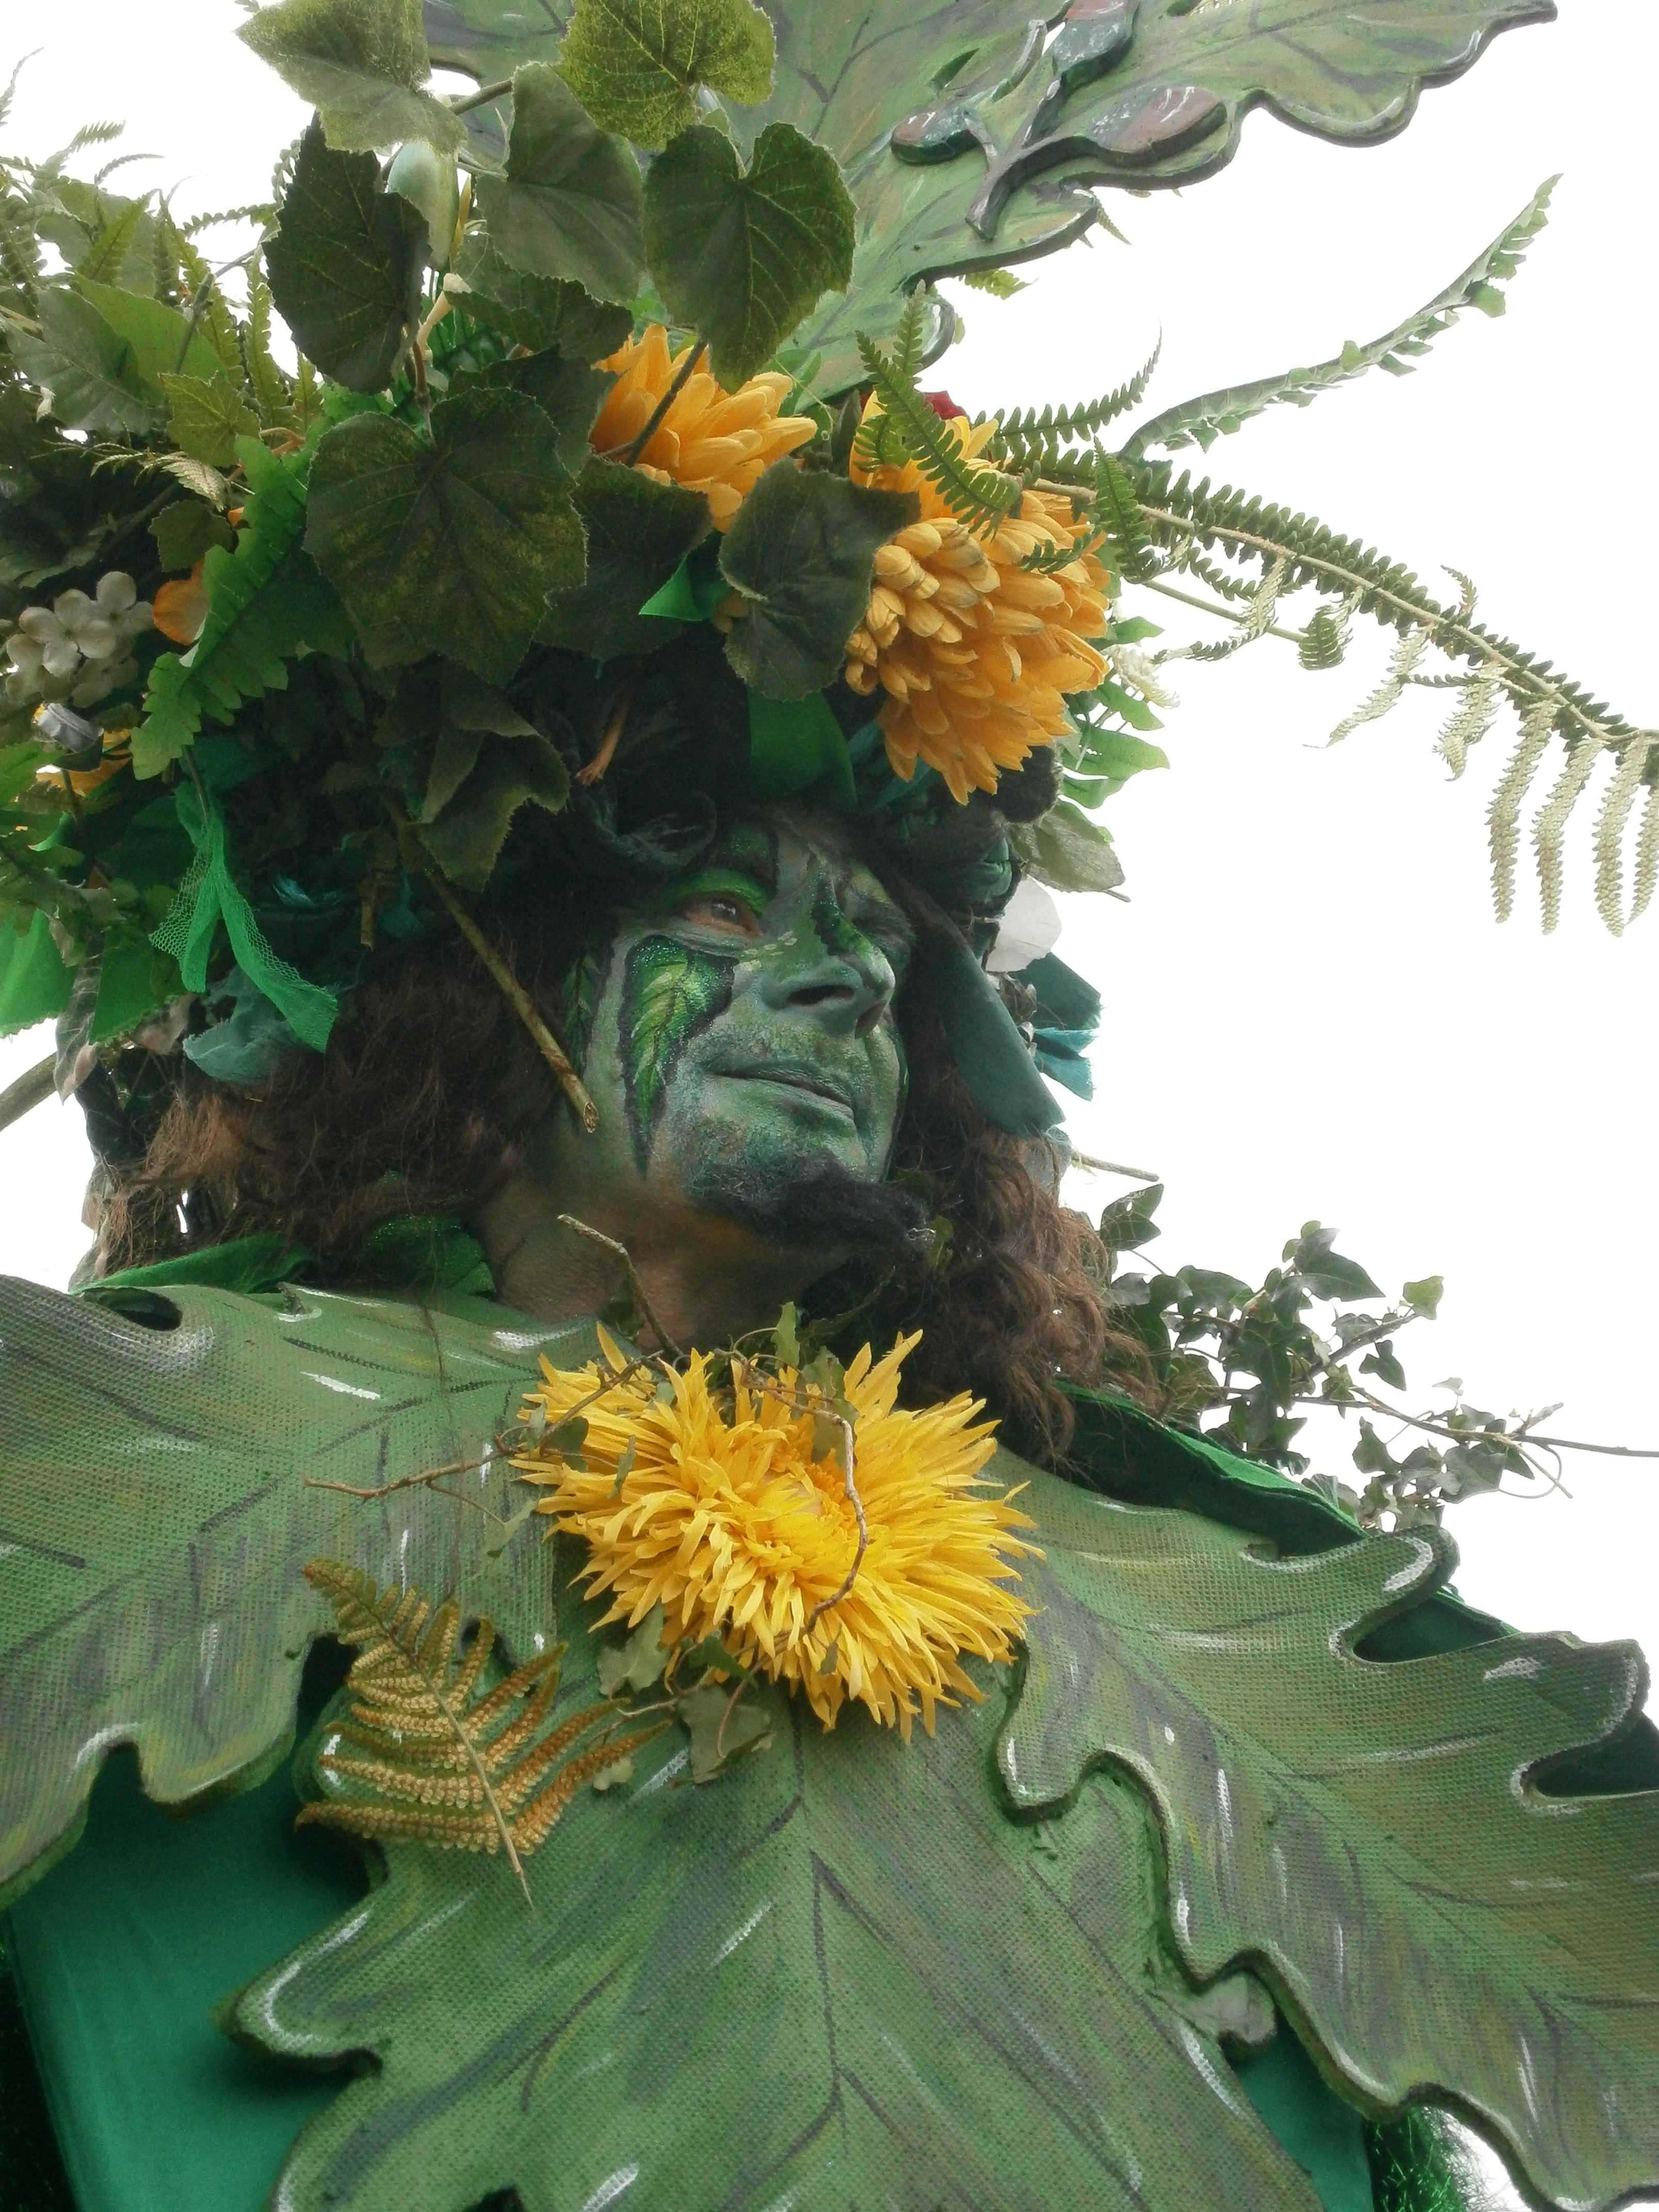 Laurie in Green Man costume